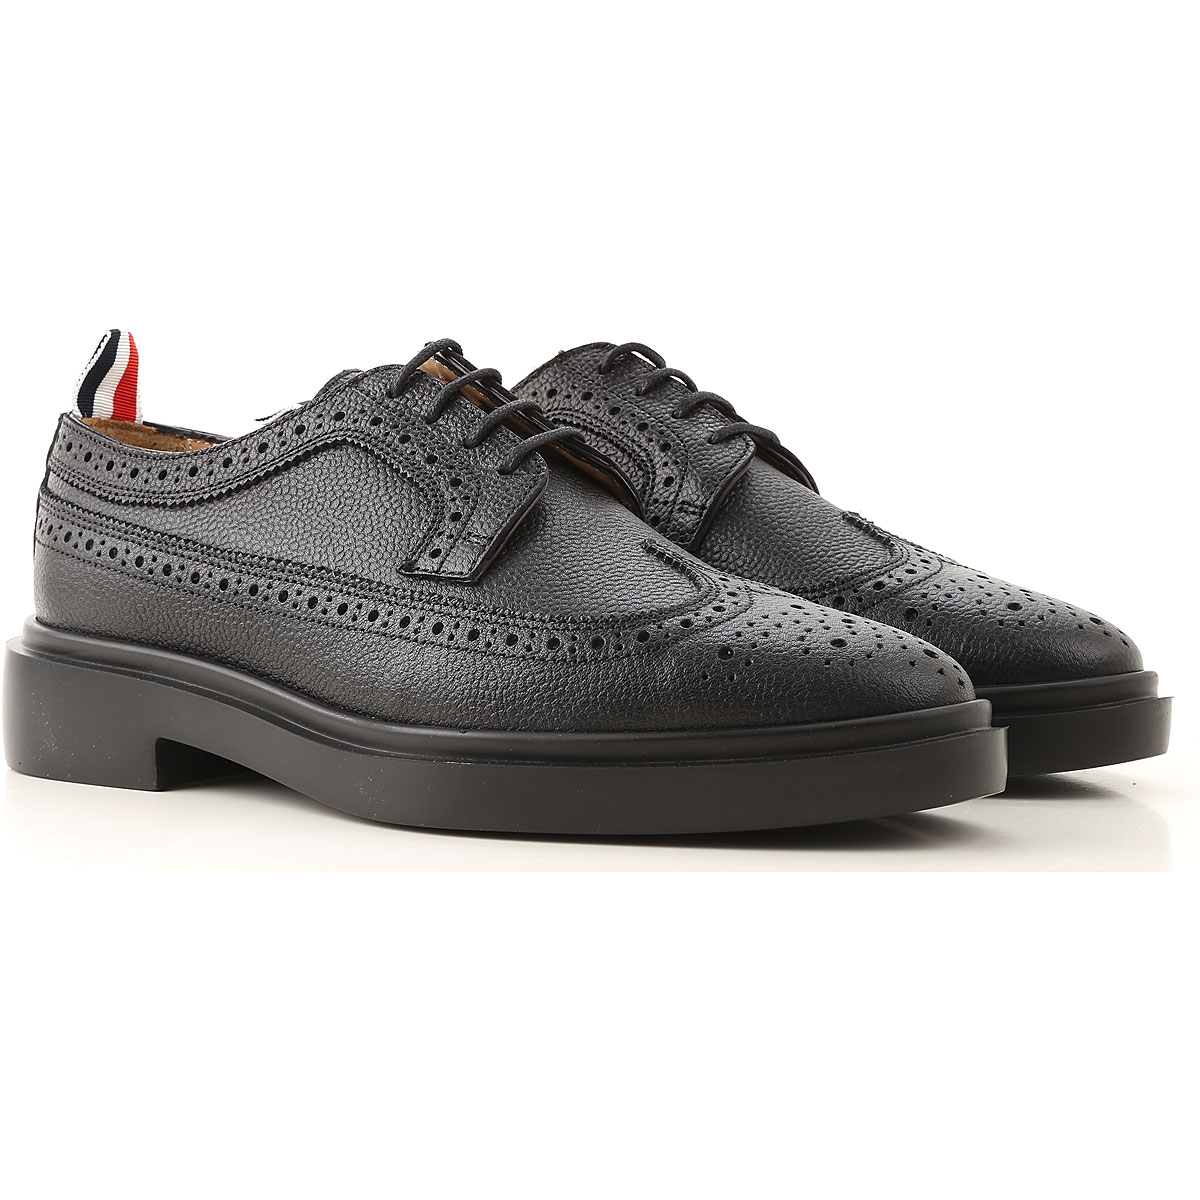 THOM BROWNE Lace Up Shoes for Men Oxfords, Derbies and Brogues On Sale, Black, Leather, 2019, 10 6 9